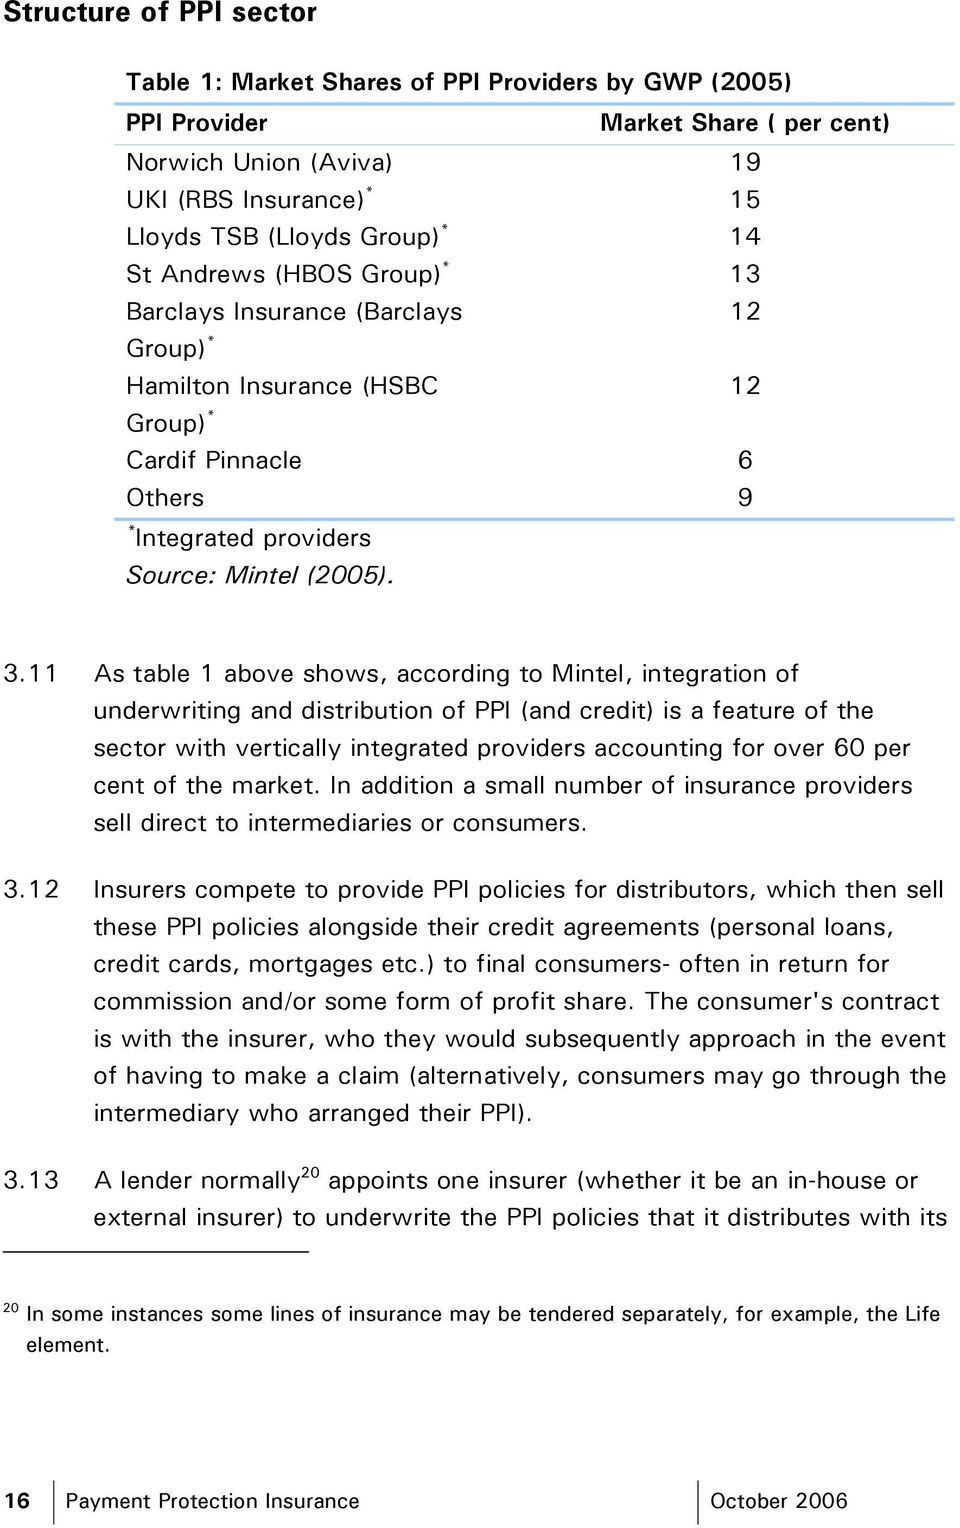 11 As table 1 above shows, according to Mintel, integration of underwriting and distribution of PPI (and credit) is a feature of the sector with vertically integrated providers accounting for over 60